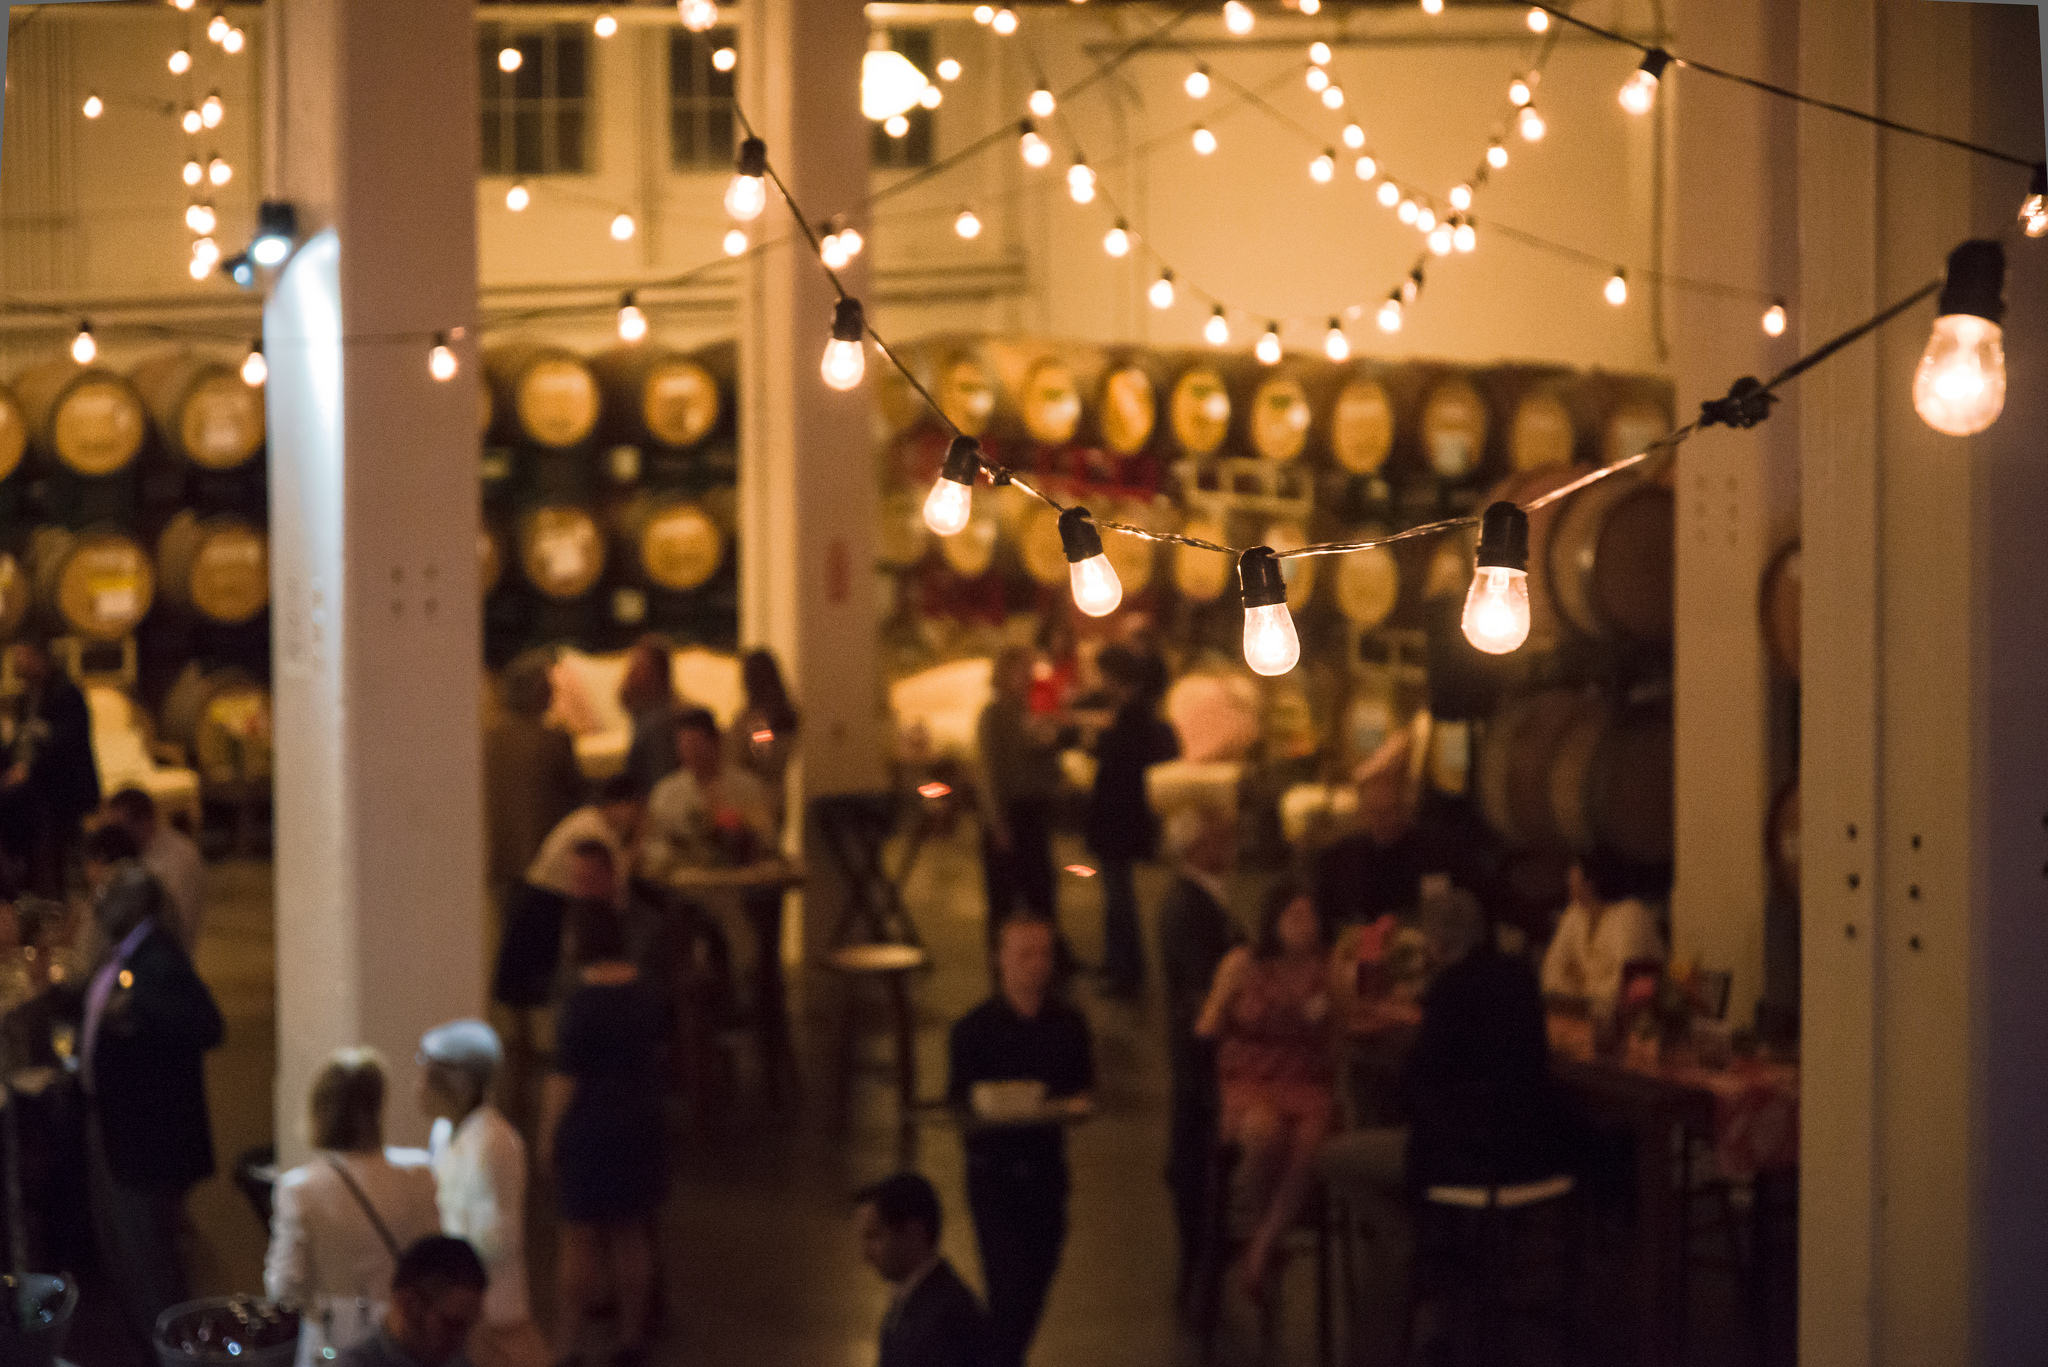 Dogpatch Wine Works is an urban winery where you can taste and also make your own wine.